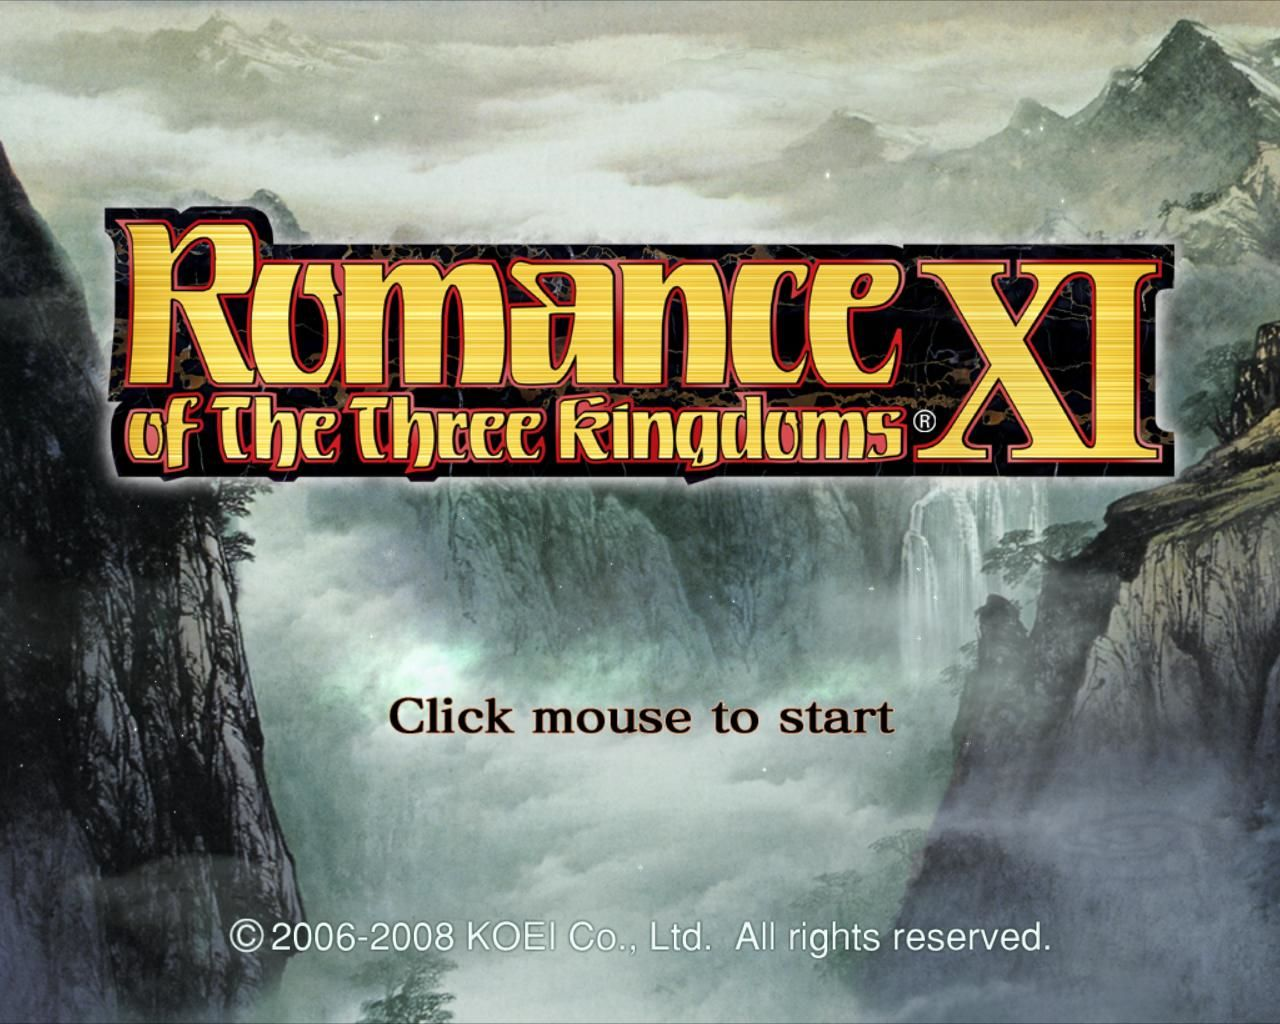 Romance of the Three Kingdoms XI Windows Main Menu - Something you'd expect to see from a console game.